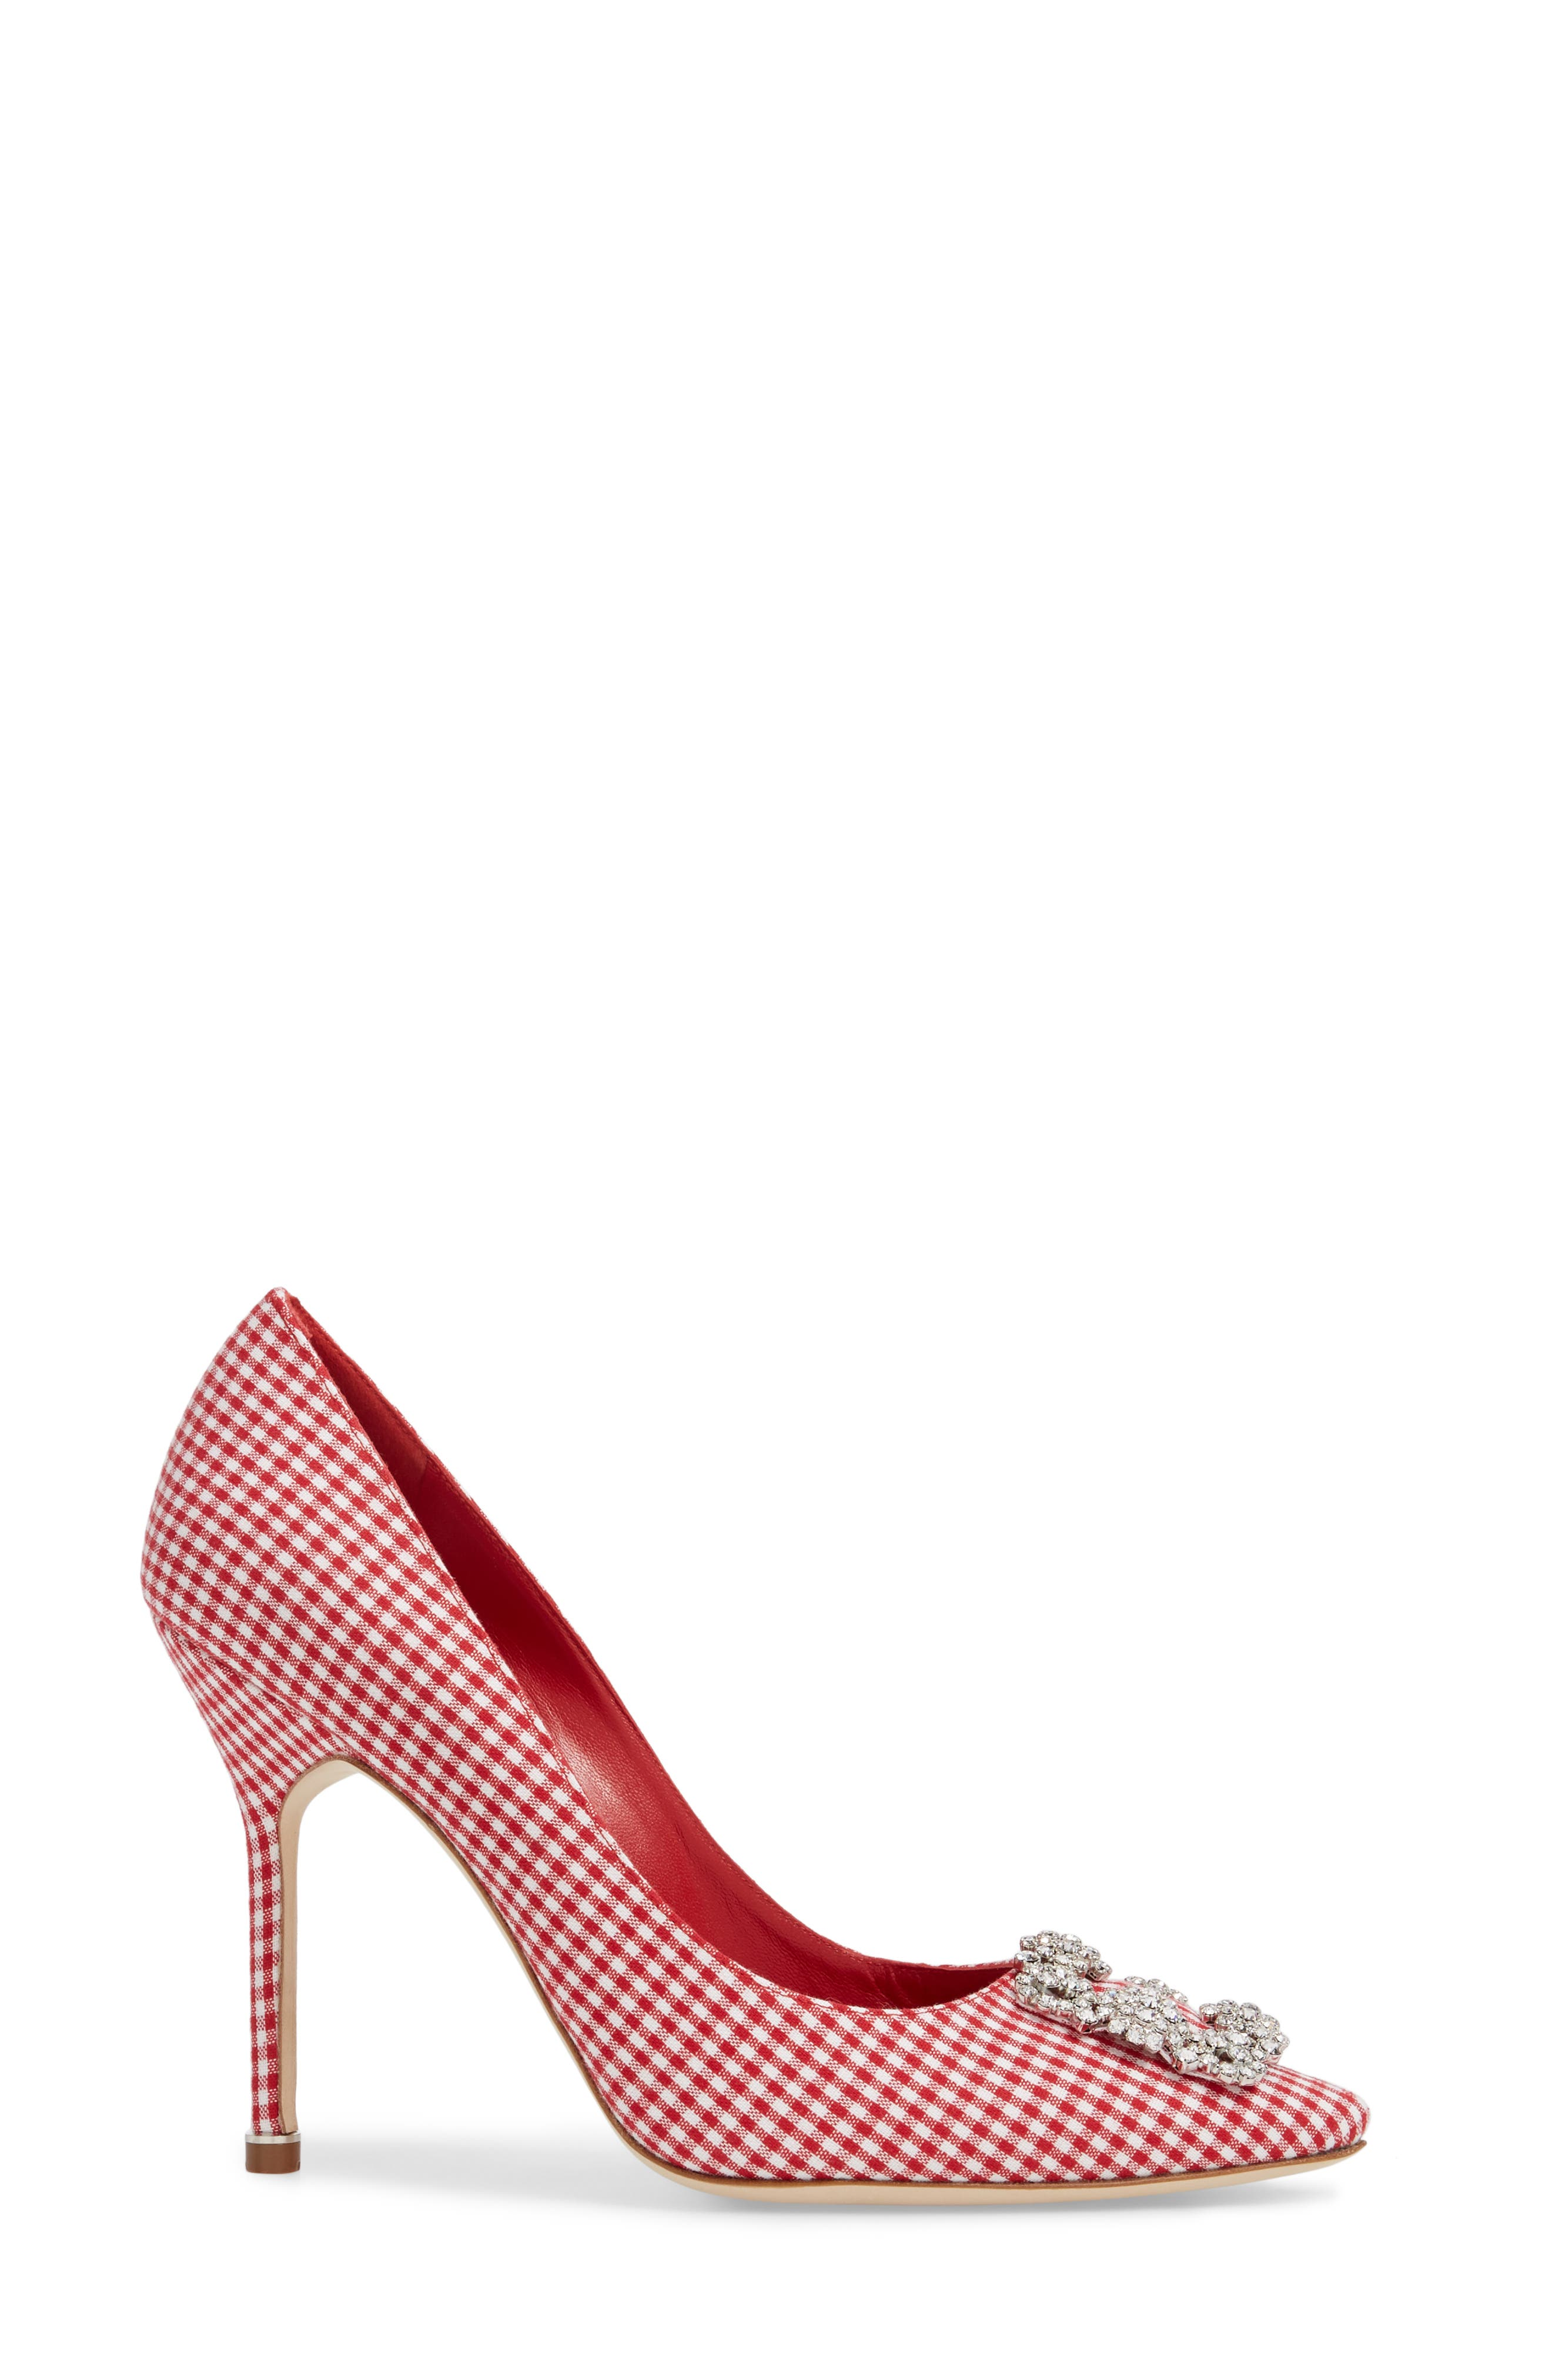 'Hangisi' Ornamented Pump,                             Alternate thumbnail 3, color,                             Red Gingham